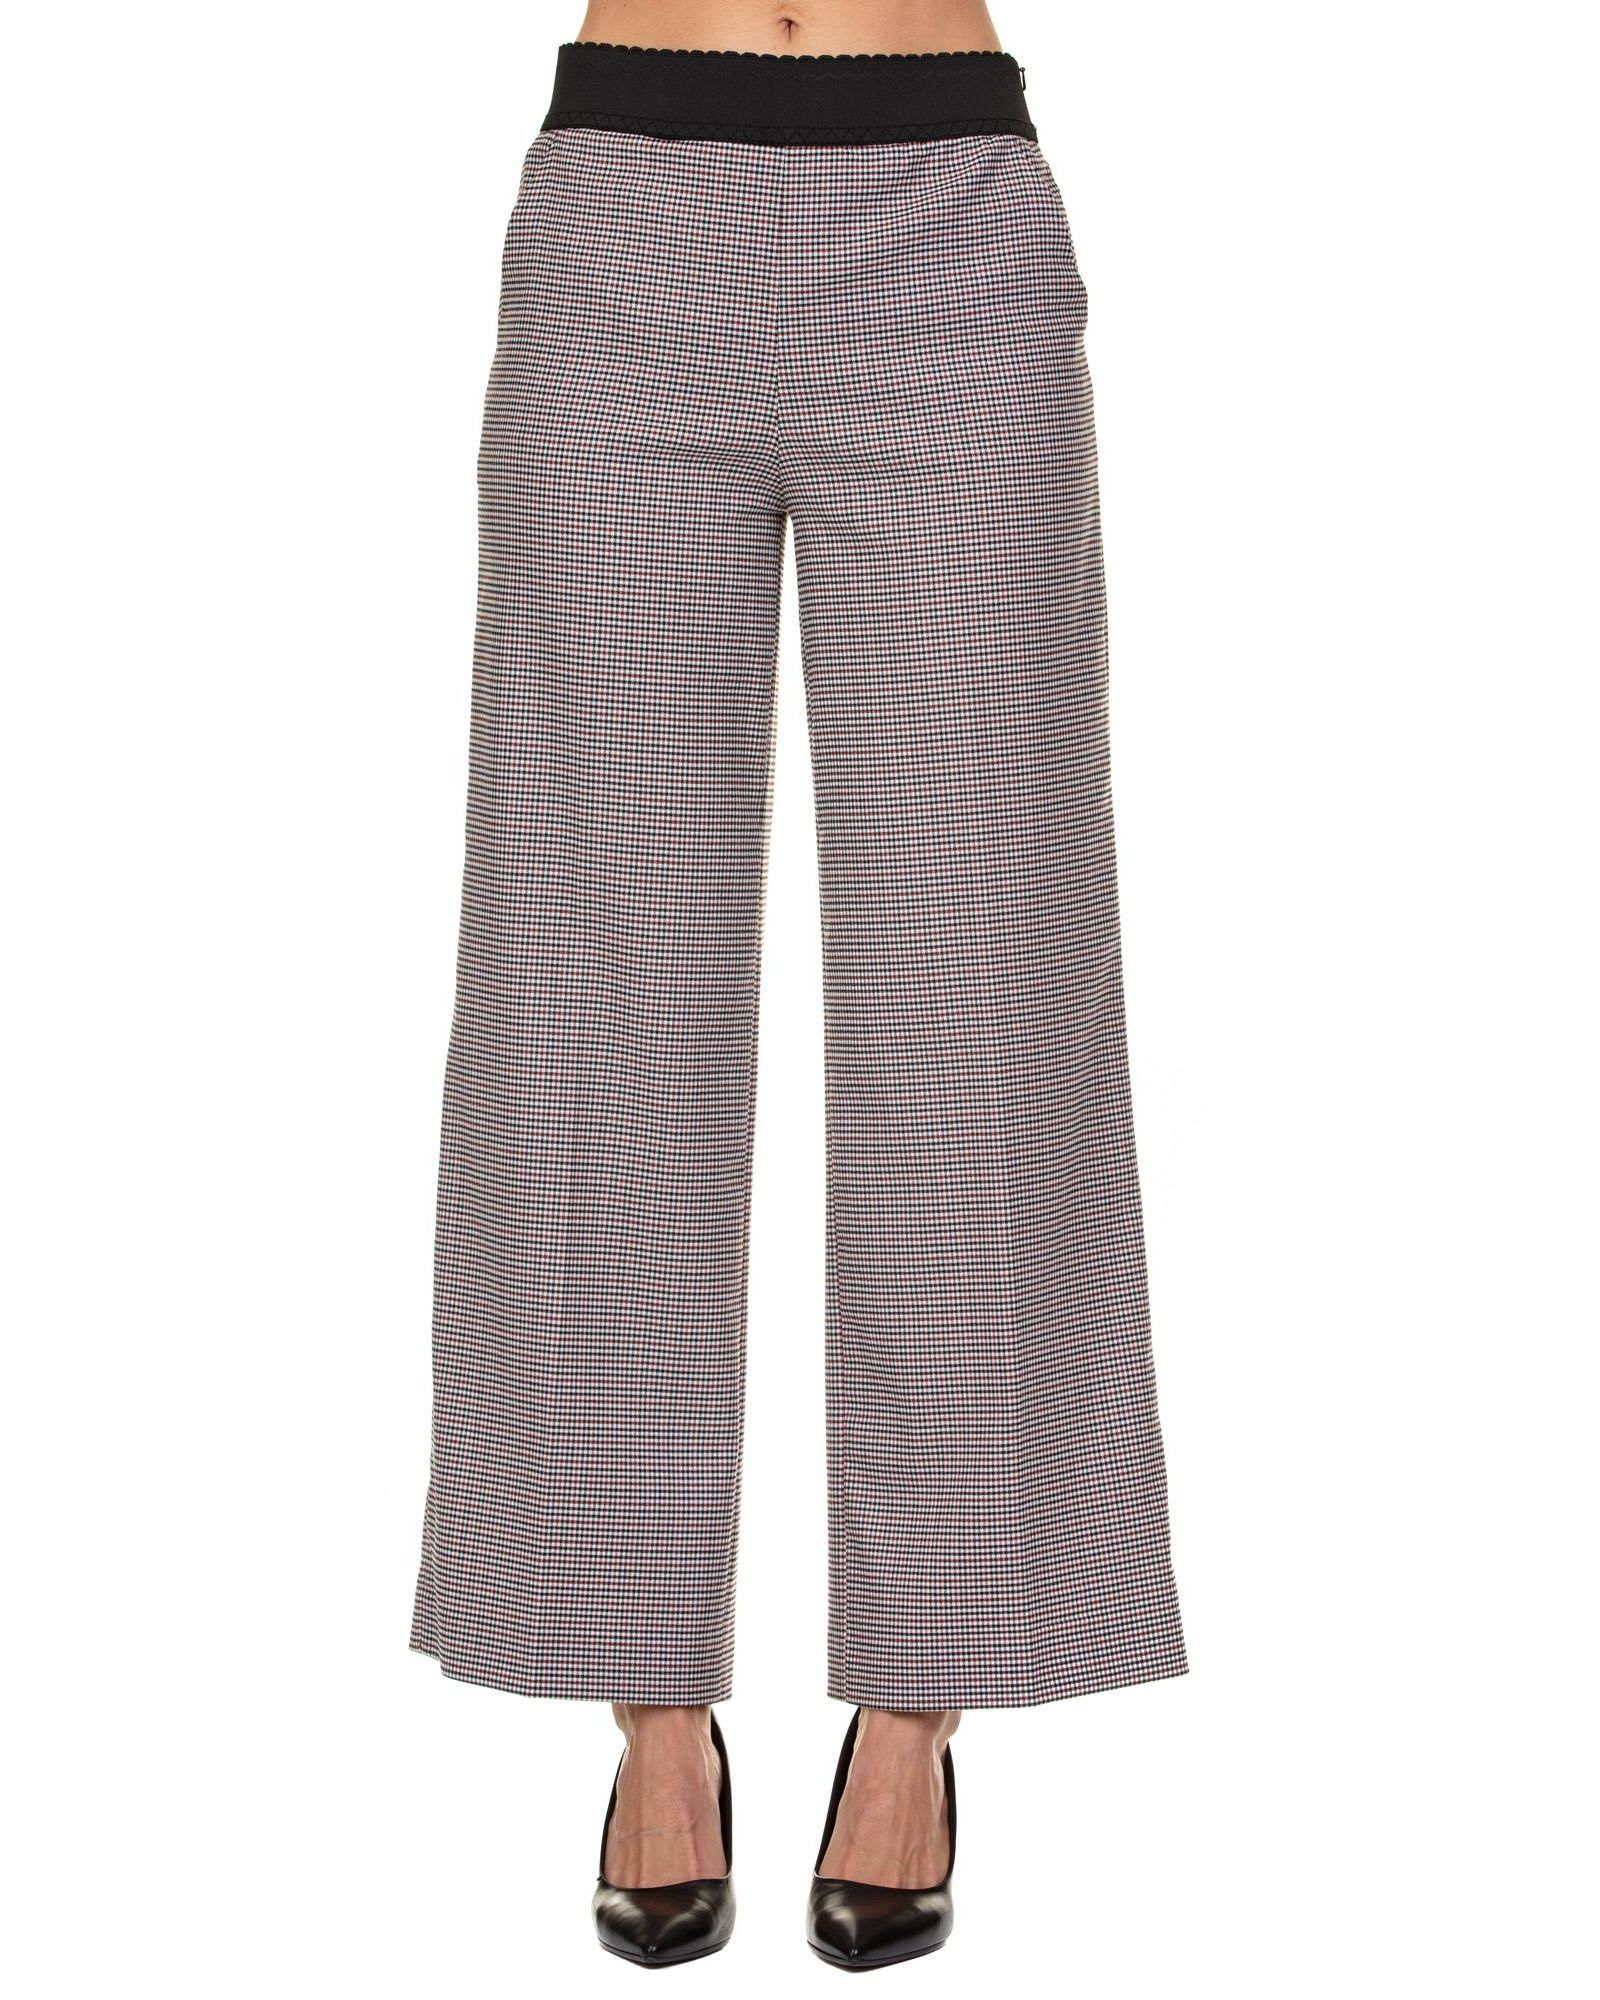 BOUTIQUE MOSCHINO VIRGIN WOOL BLEND STRETCH TROUSERS